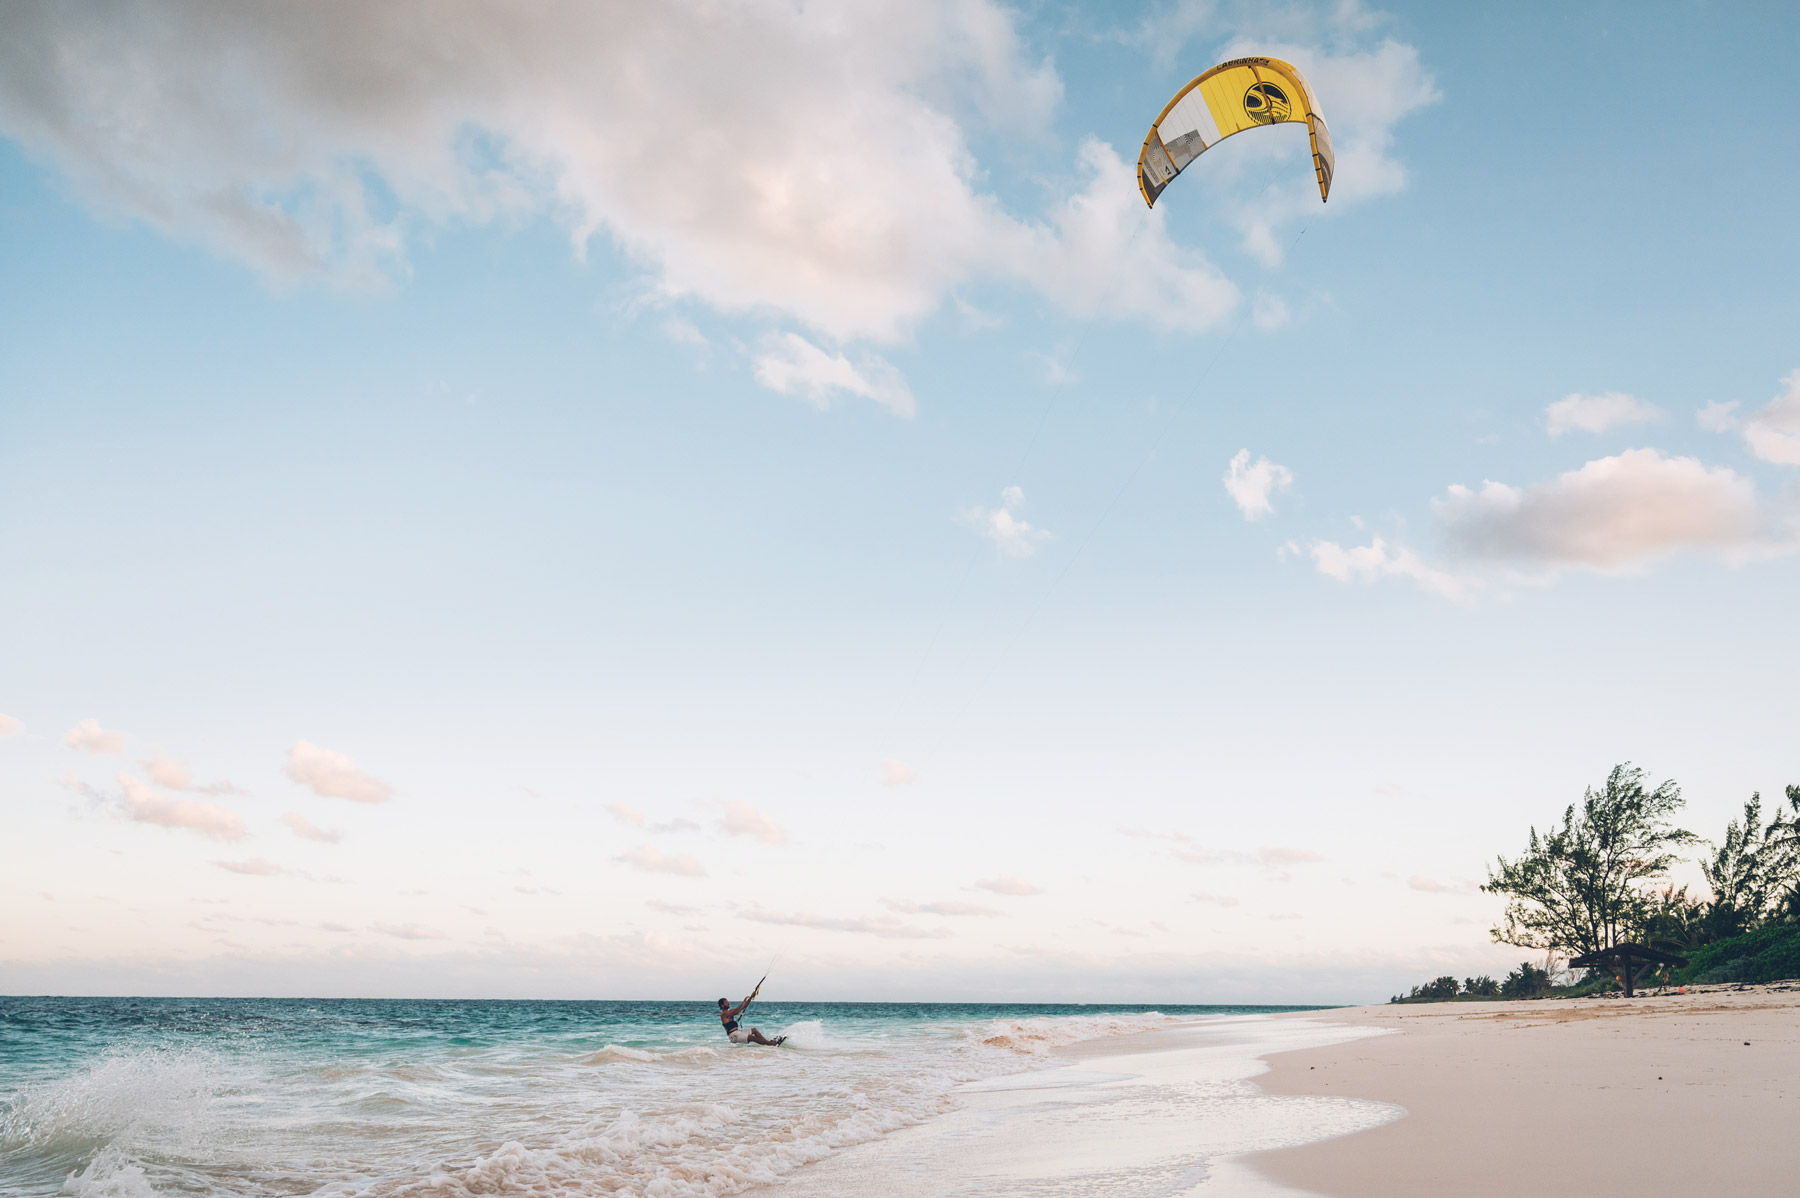 Kite Surf, Cat island, Bahamas